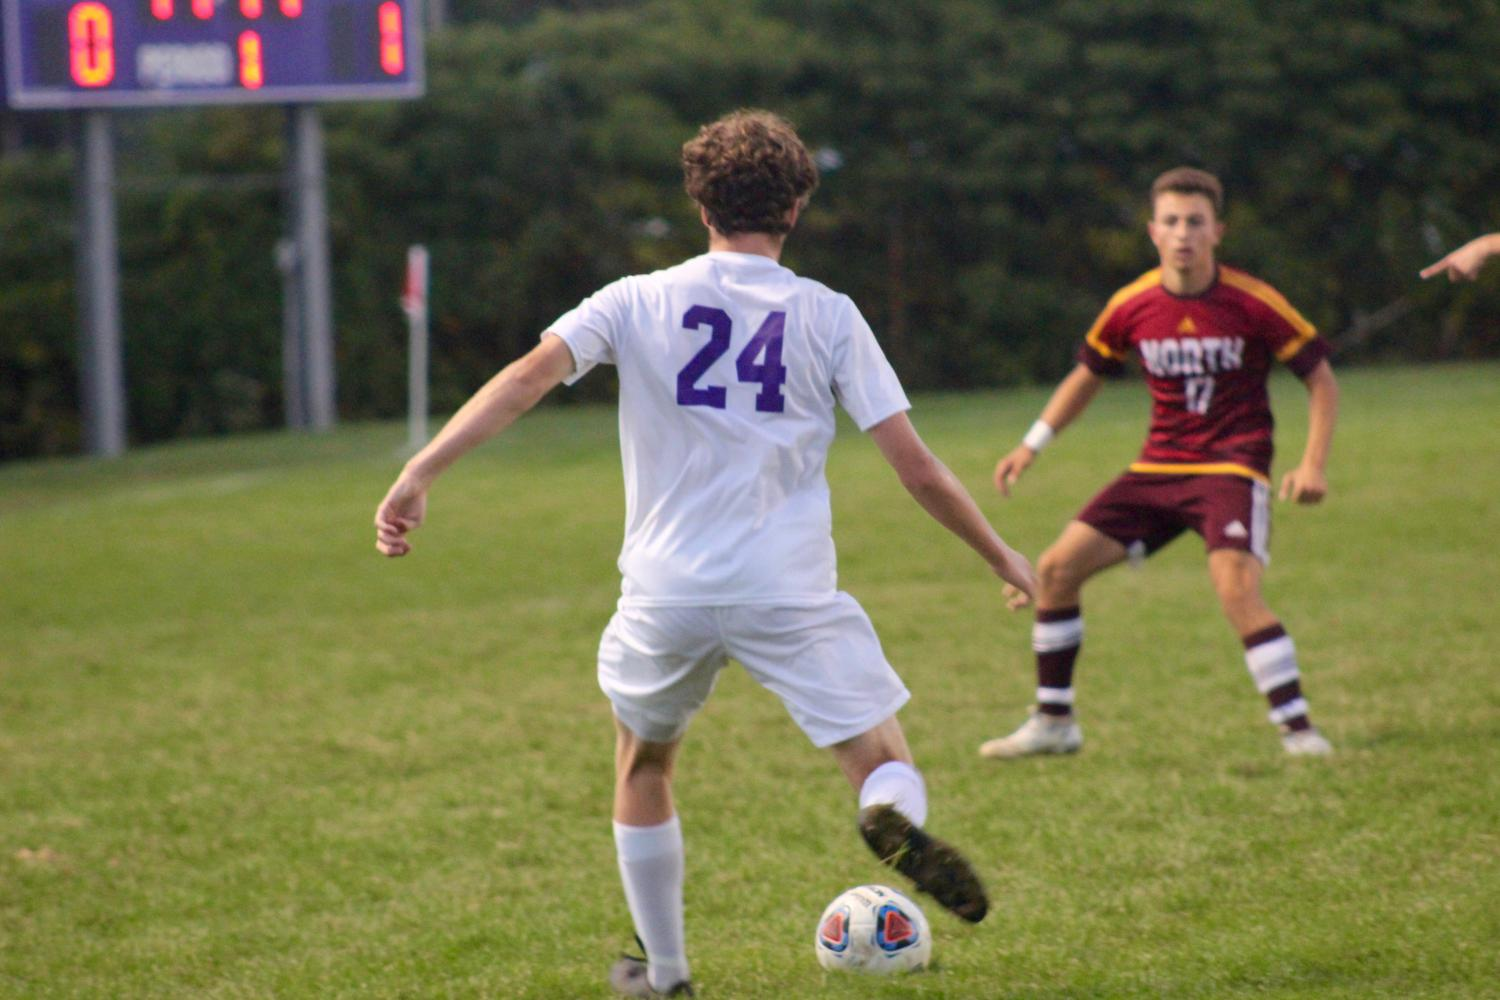 Panther soccer defeats the Cougars in crosstown rivalry match